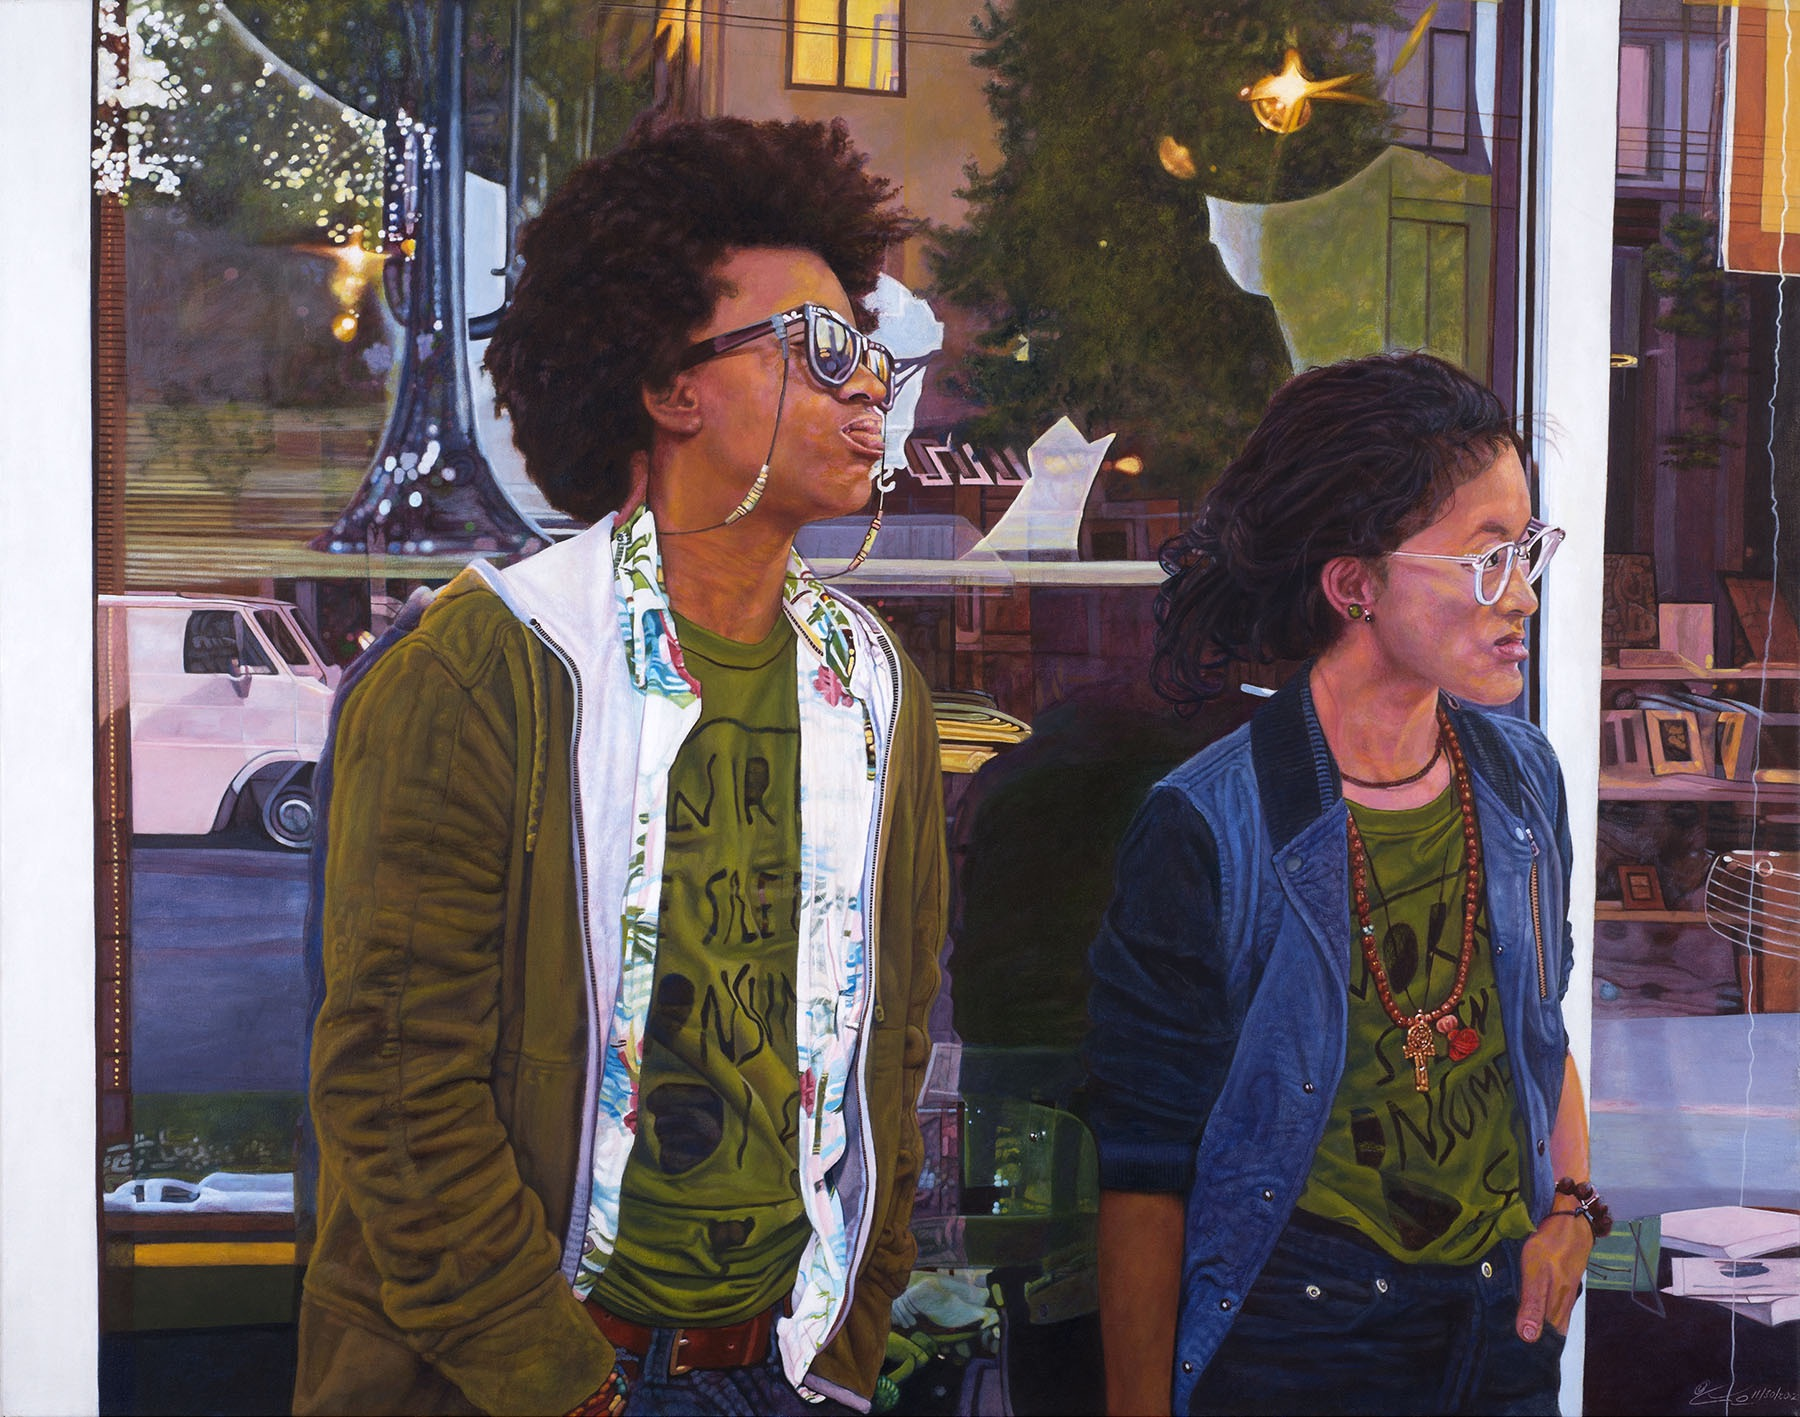 Lenore Chinn, Veuxdo in the Fillmore (2012); acrylic on canvas. Copyright © Lenore Chinn.